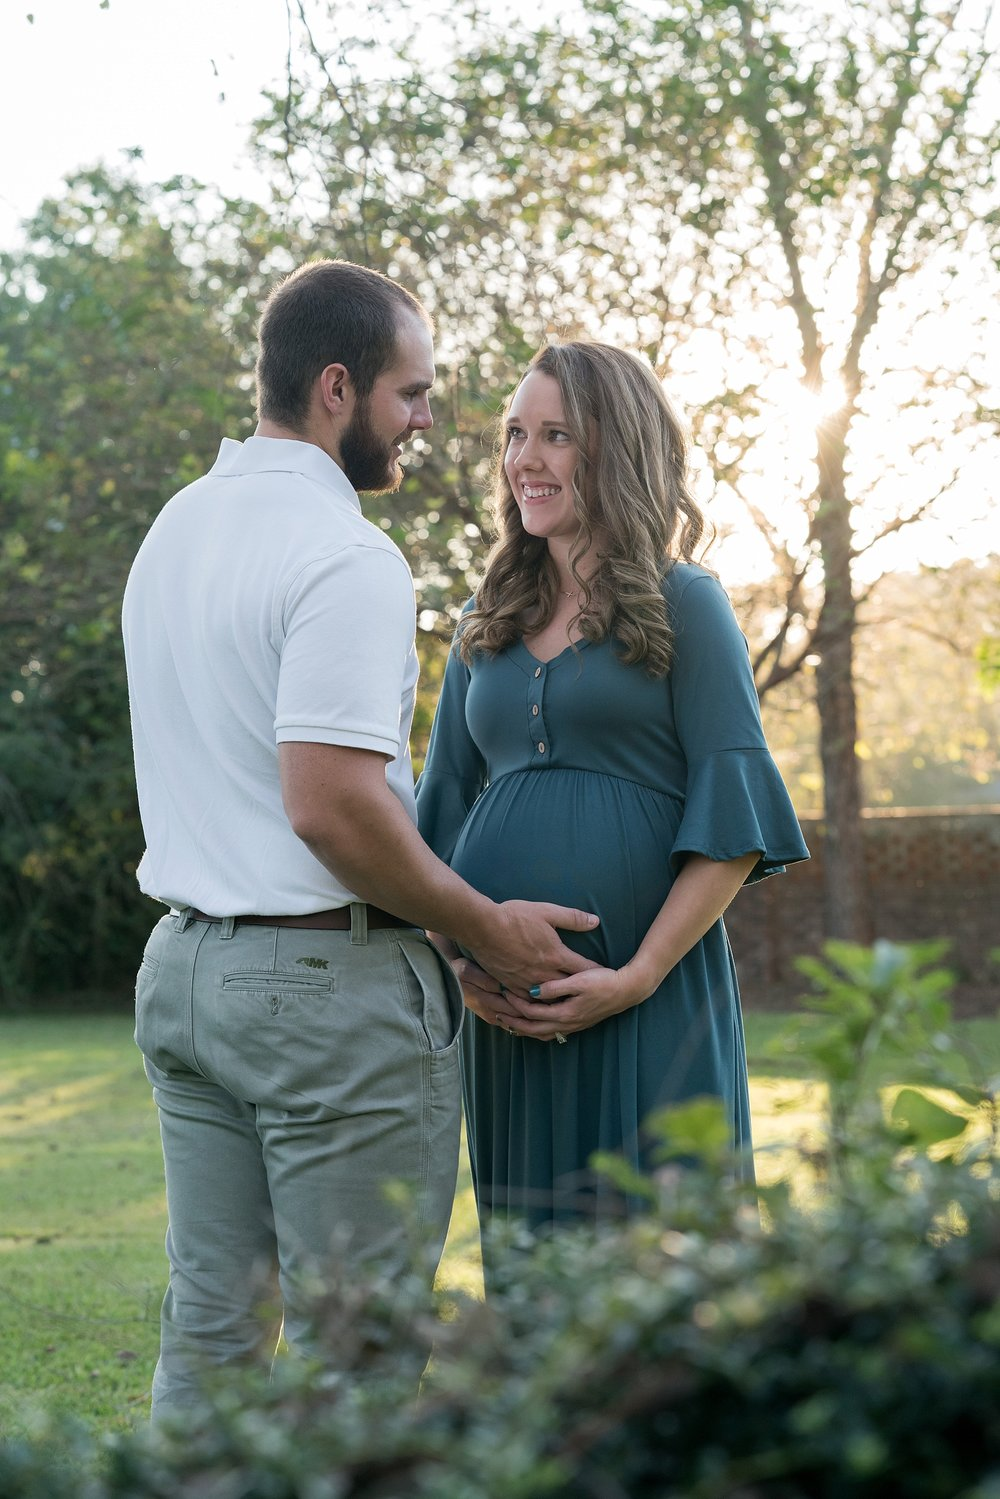 Farmville-NC-Maternity-Photographer-071.jpg